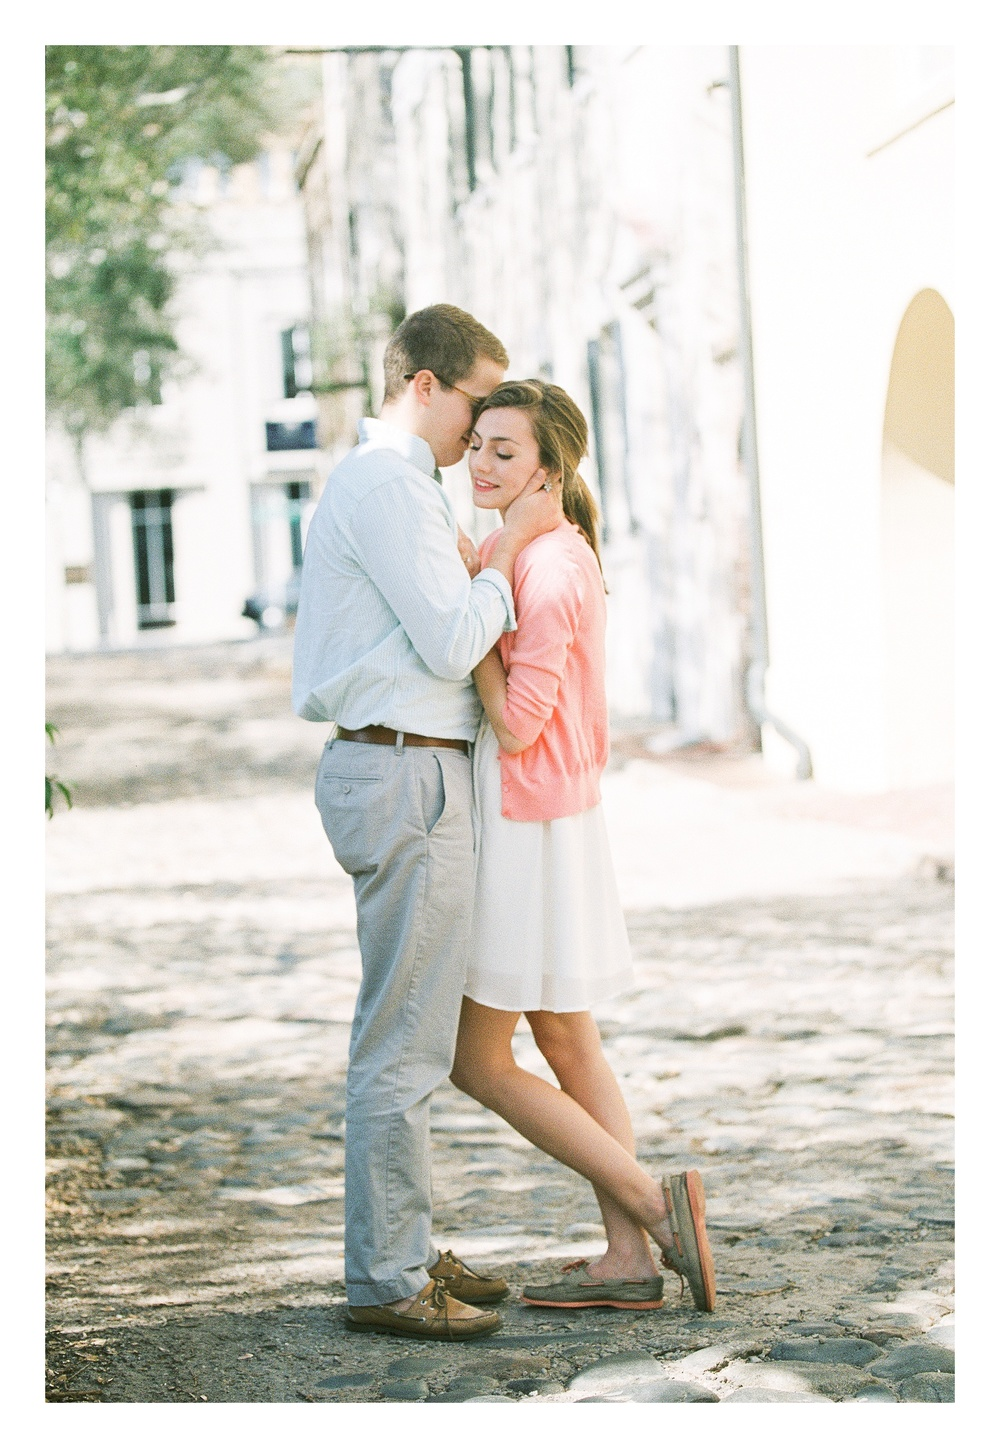 Charleston engagement photographer captures couple shares a sweet moment in downtown Historic Charleston street